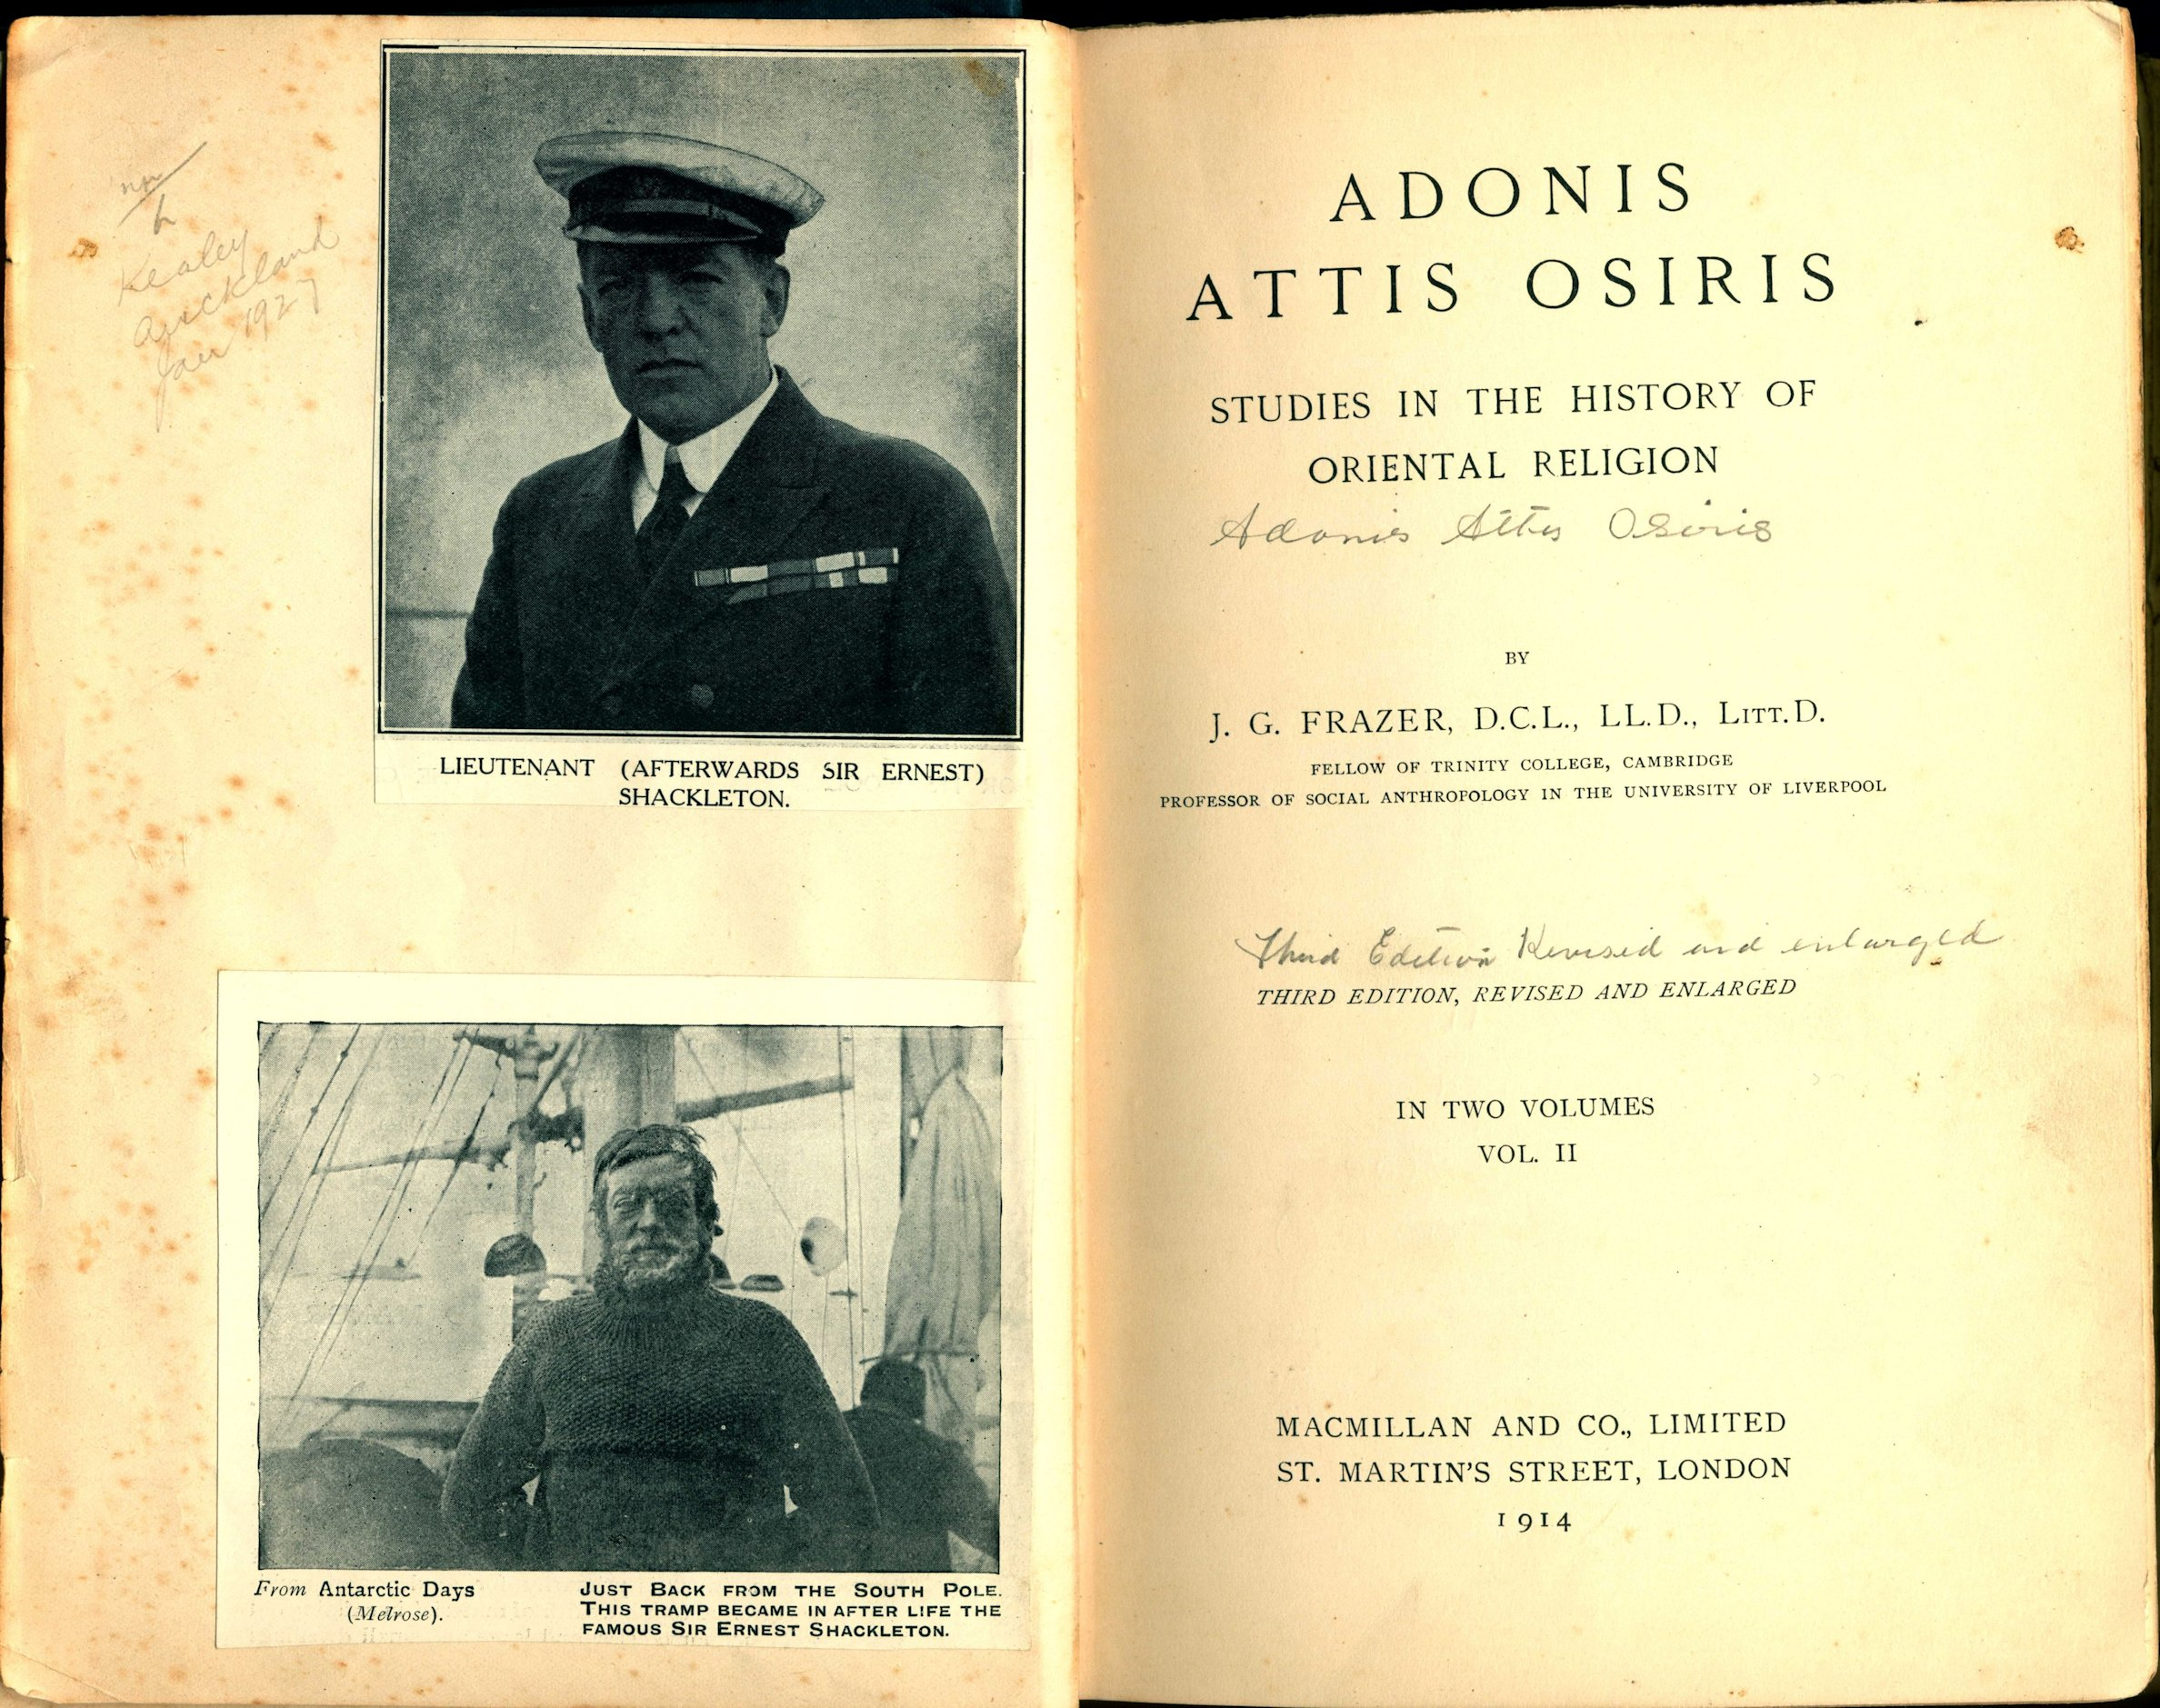 James George Frazer. Adonis, Attis, Osiris: studies in the history of oriental religion. 3rd edition. London: Macmillan, 1914. Two volumes; Vol. 2 displayed.